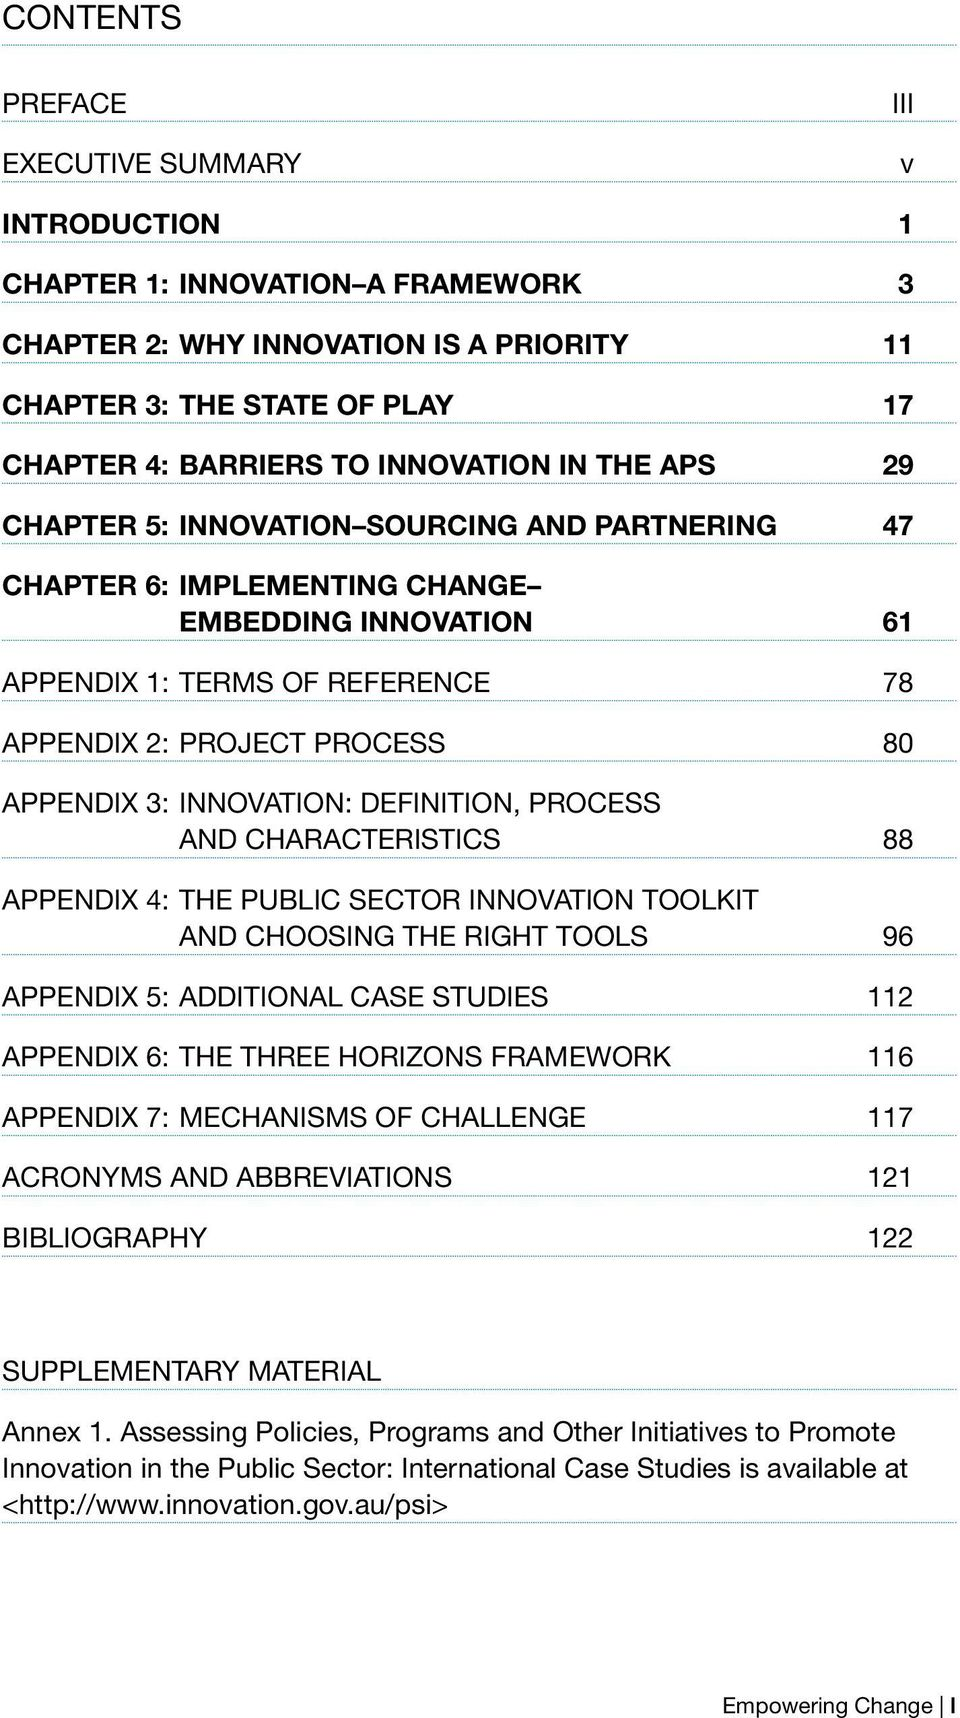 APPENDIX 3: INNOVATION: DEFINITION, PROCESS AND CHARACTERISTICS 88 APPENDIX 4: THE PUBLIC SECTOR INNOVATION TOOLKIT AND CHOOSING THE RIGHT TOOLS 96 APPENDIX 5: ADDITIONAL CASE STUDIES 112 APPENDIX 6: